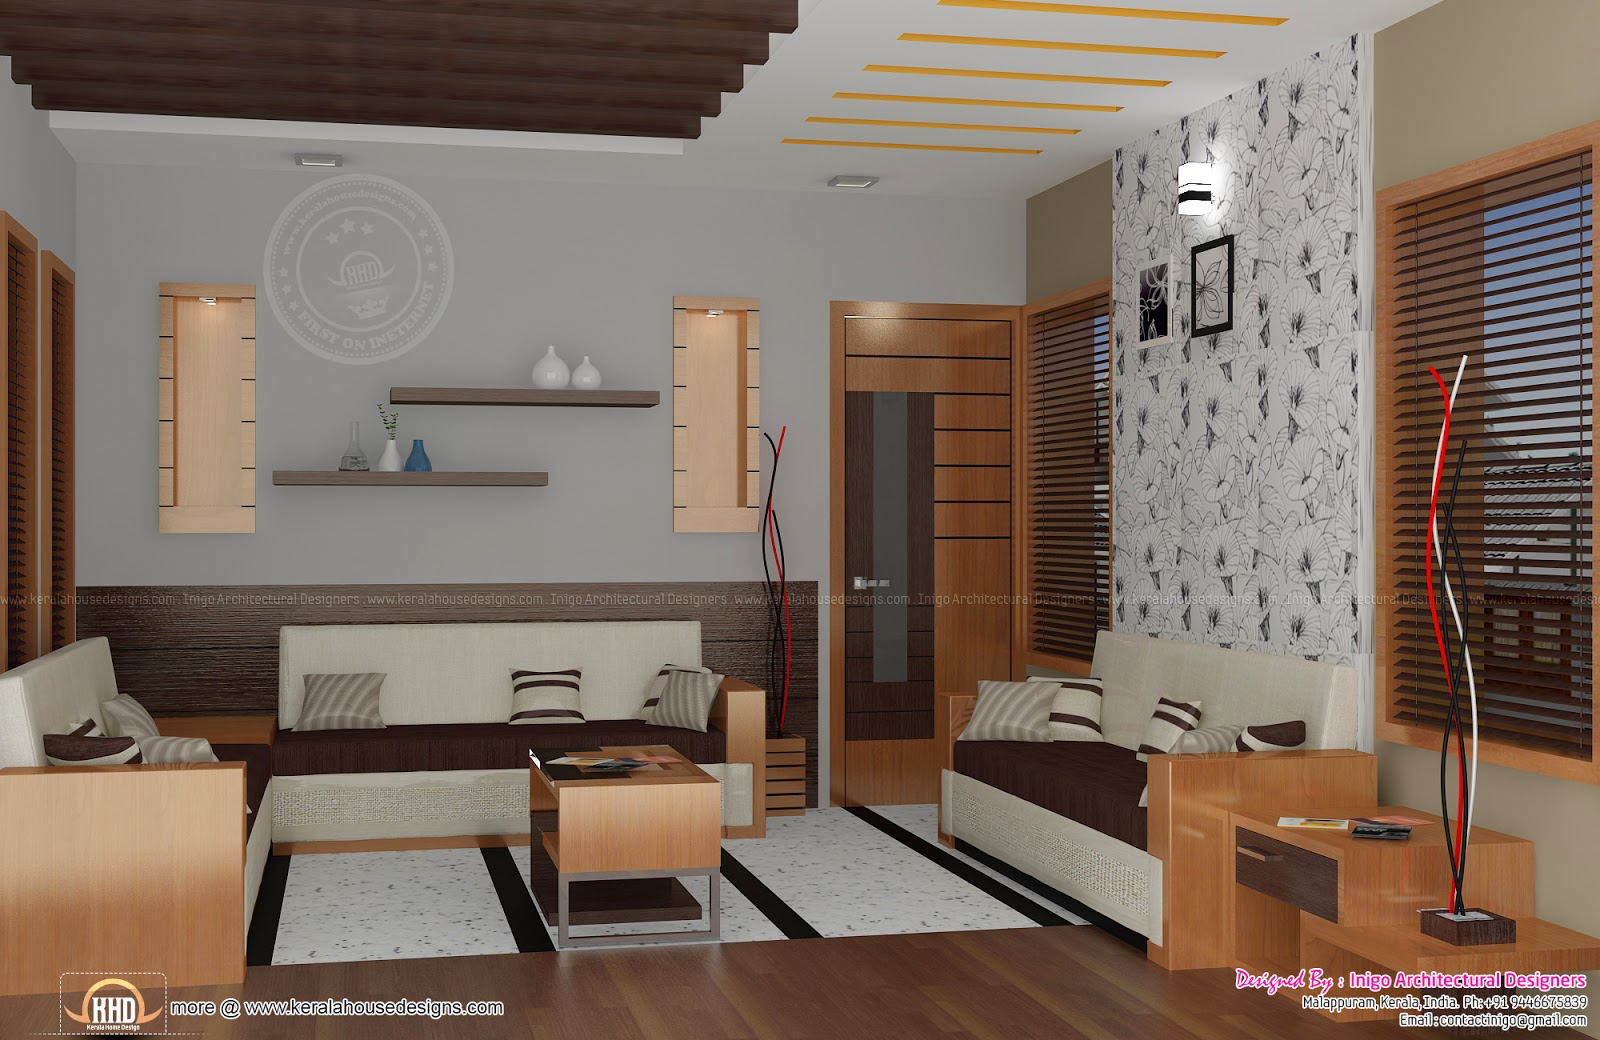 Home interior renderings by inigo architectural designers for Kerala house living room interior design